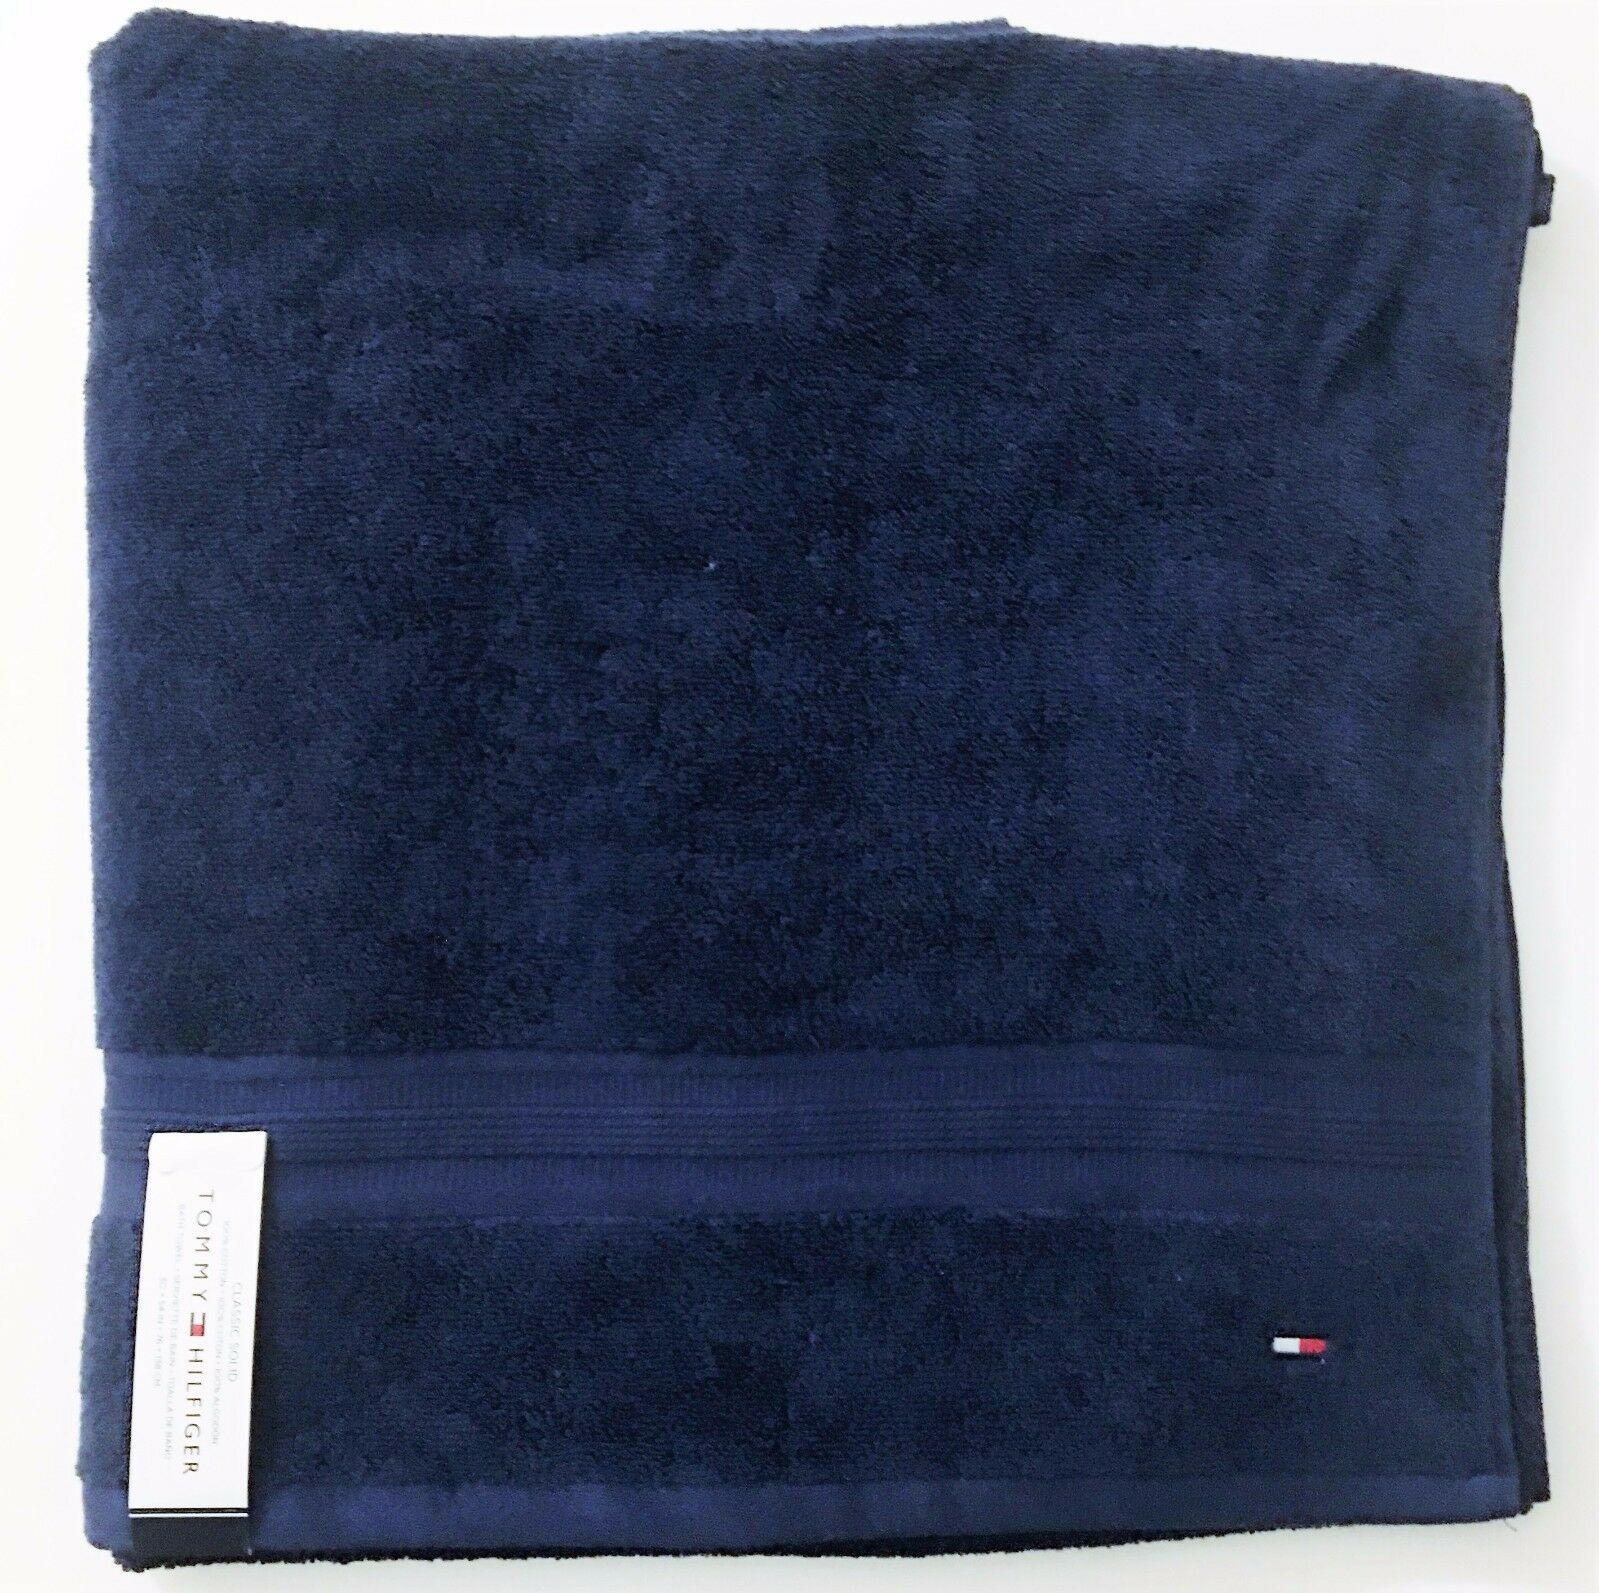 42.00 100/% Cotton Tommy Hilfiger Beach Towel 35X66 New Flag Lobster Was